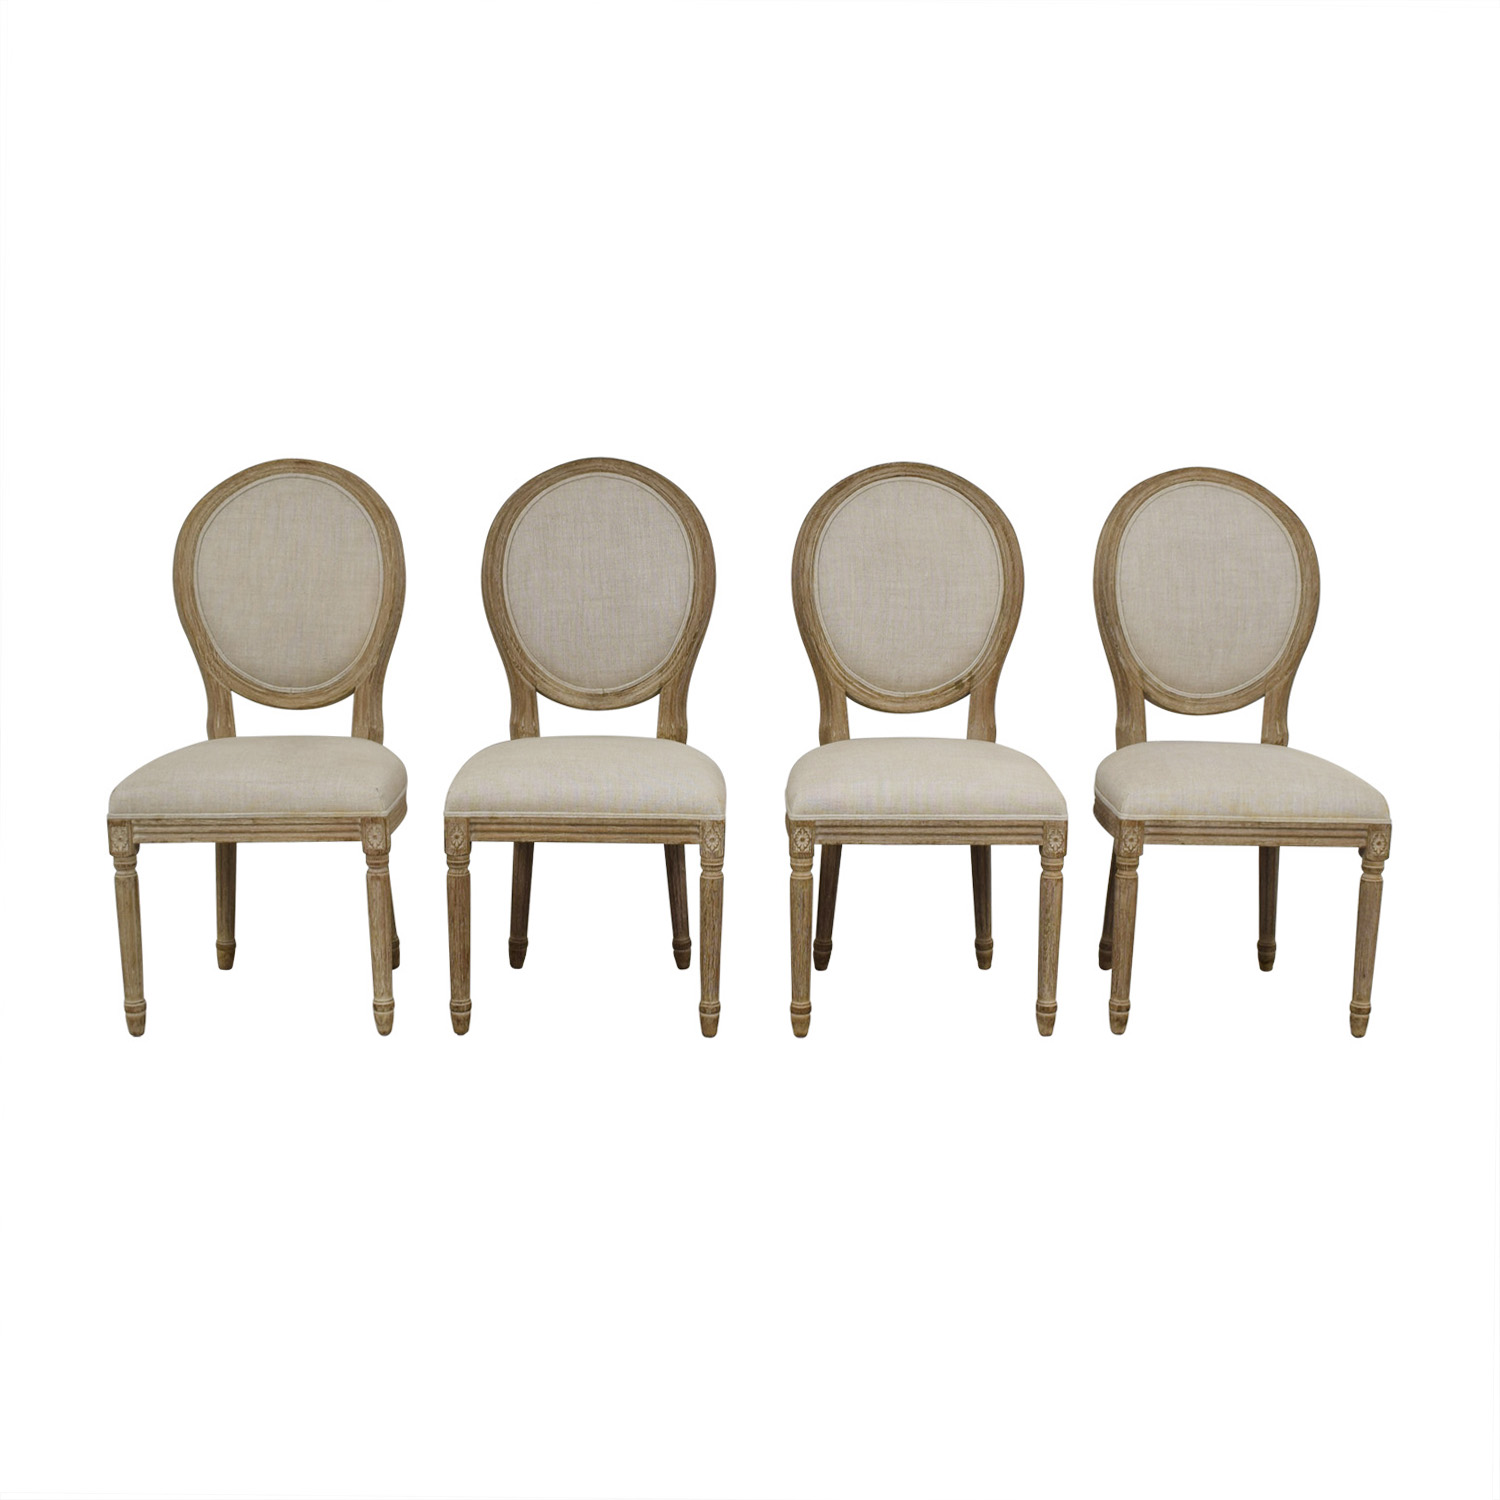 Restoration Hardware Restoration Hardware Vintage French Round Dining Chairs dimensions